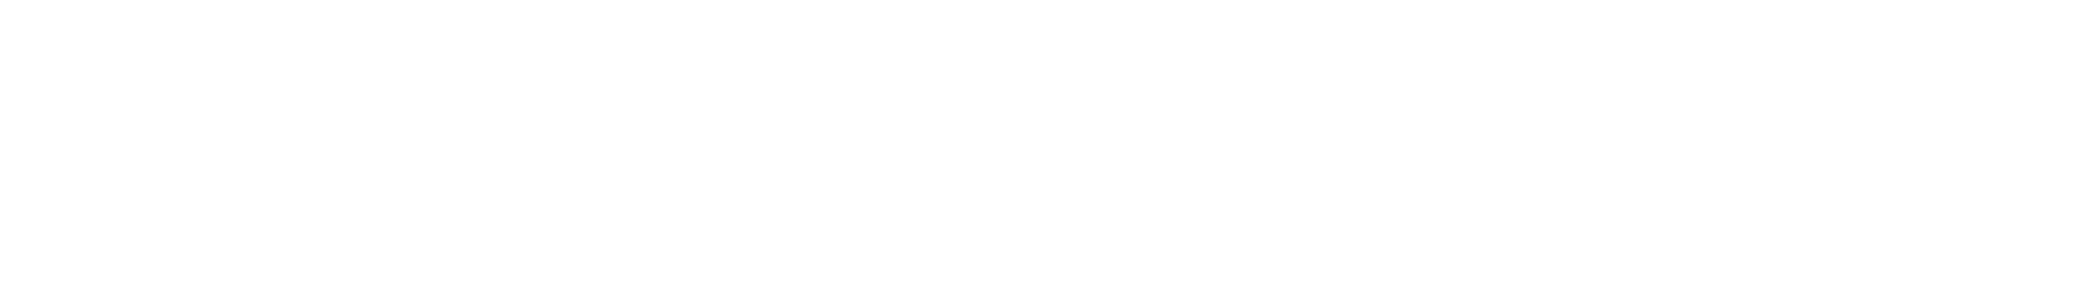 Autonomous Vehicles Online